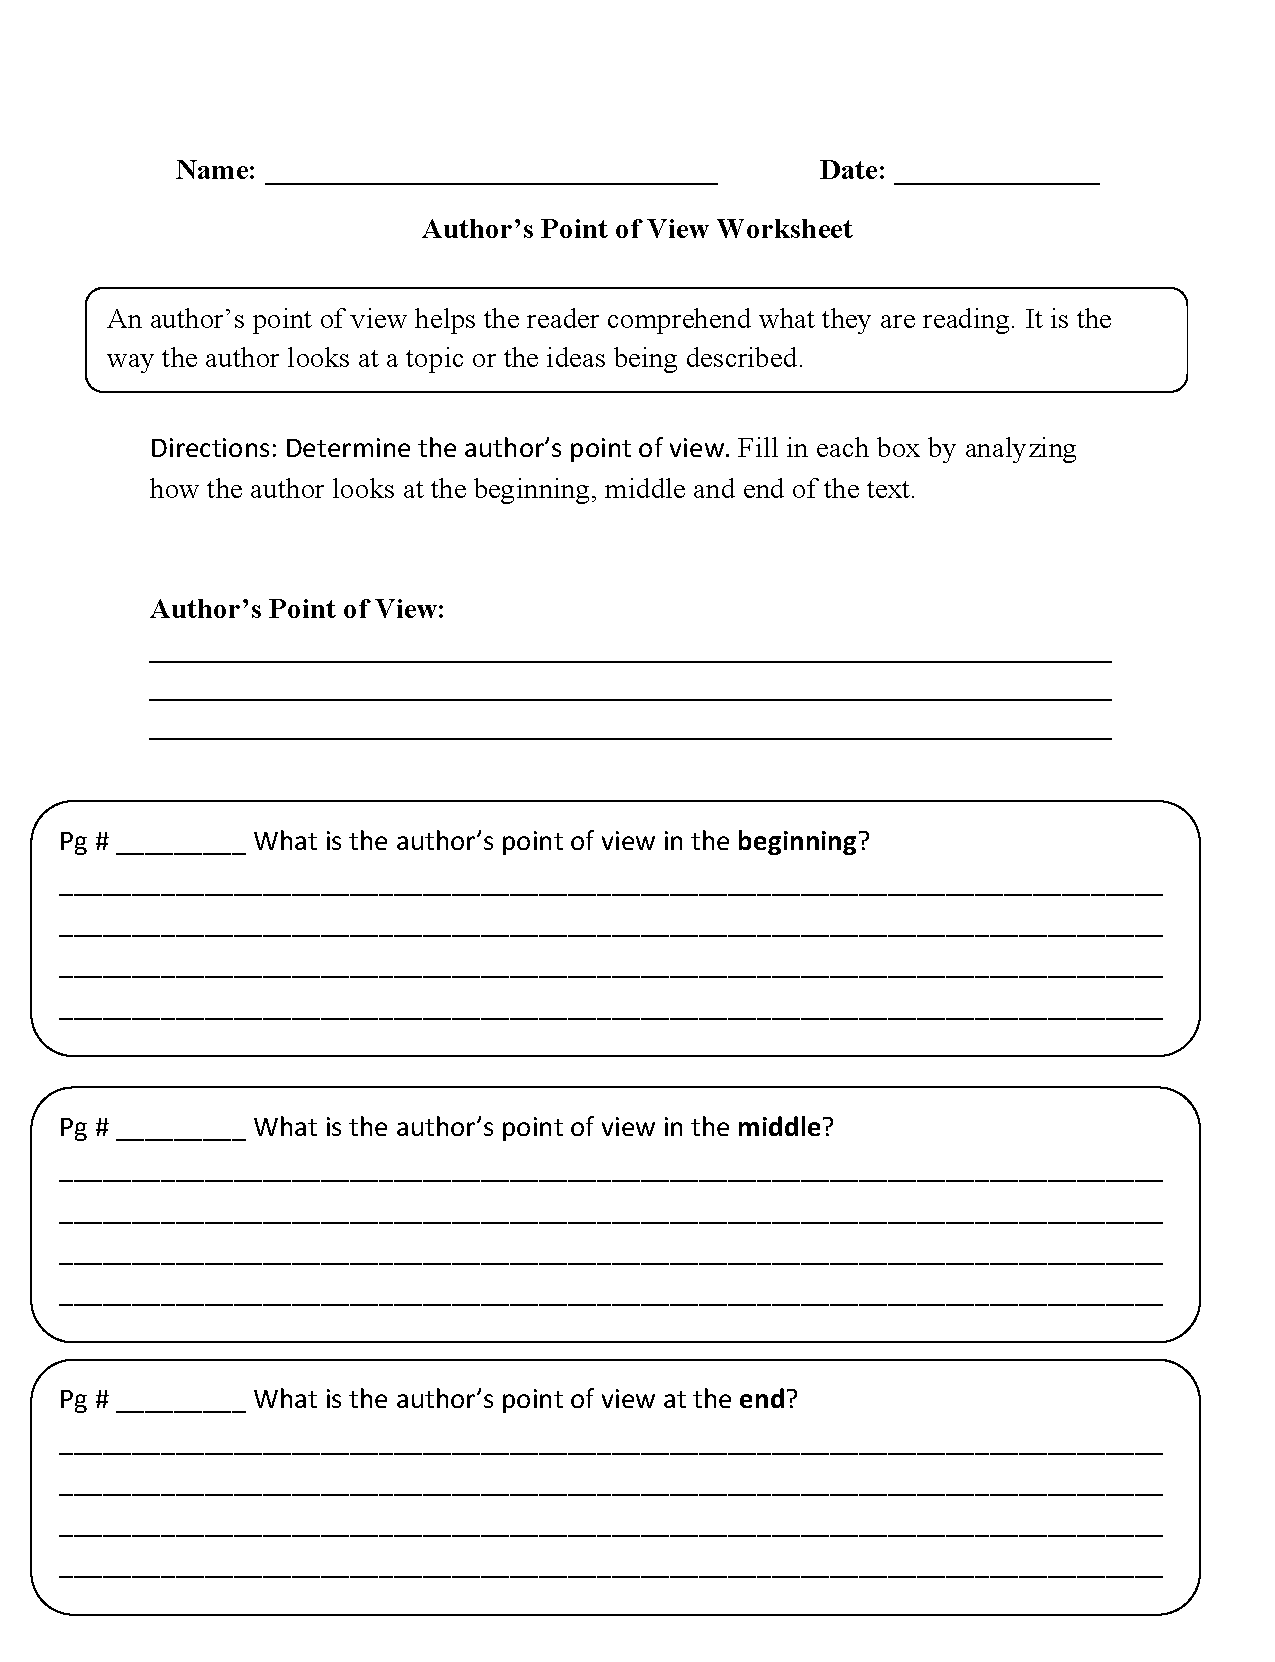 Weirdmailus  Marvelous Englishlinxcom  Point Of View Worksheets With Hot Point Of View Worksheets With Endearing This That Those These Worksheets Also Nominative Case Of Nouns Worksheets In Addition   And  Multiplication Worksheets And Following Directions Worksheets For Grade  As Well As Triangular Prisms Worksheet Additionally Worksheet For Kindergarden From Englishlinxcom With Weirdmailus  Hot Englishlinxcom  Point Of View Worksheets With Endearing Point Of View Worksheets And Marvelous This That Those These Worksheets Also Nominative Case Of Nouns Worksheets In Addition   And  Multiplication Worksheets From Englishlinxcom